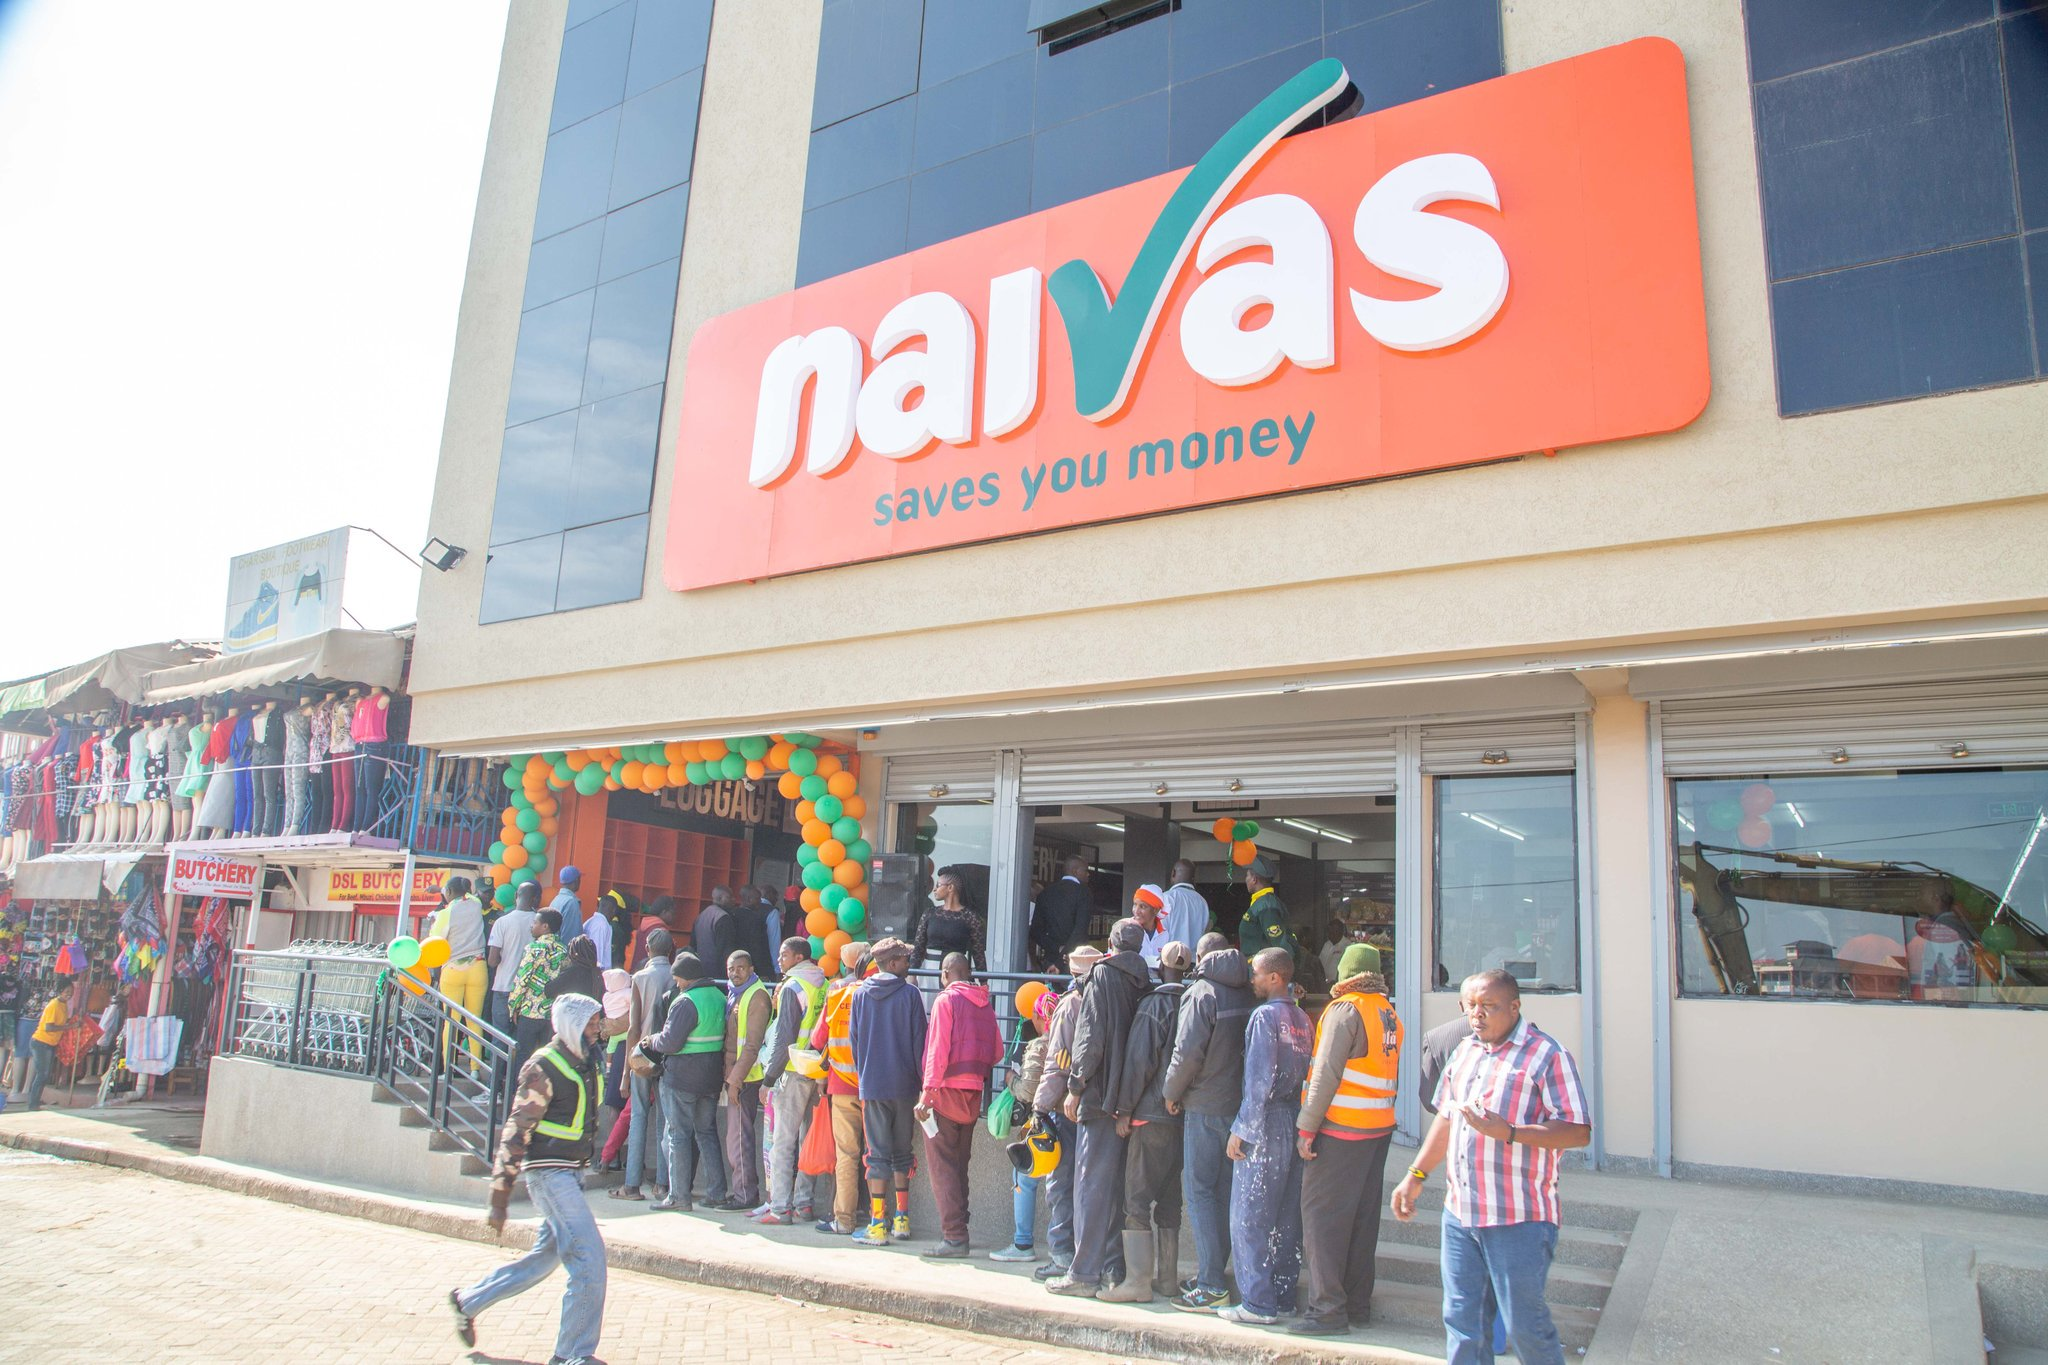 Naivas Supermarkets has opened a branch in Ngong Town, clocking 55 stores in Kenya. www.businesstoday.co.ke